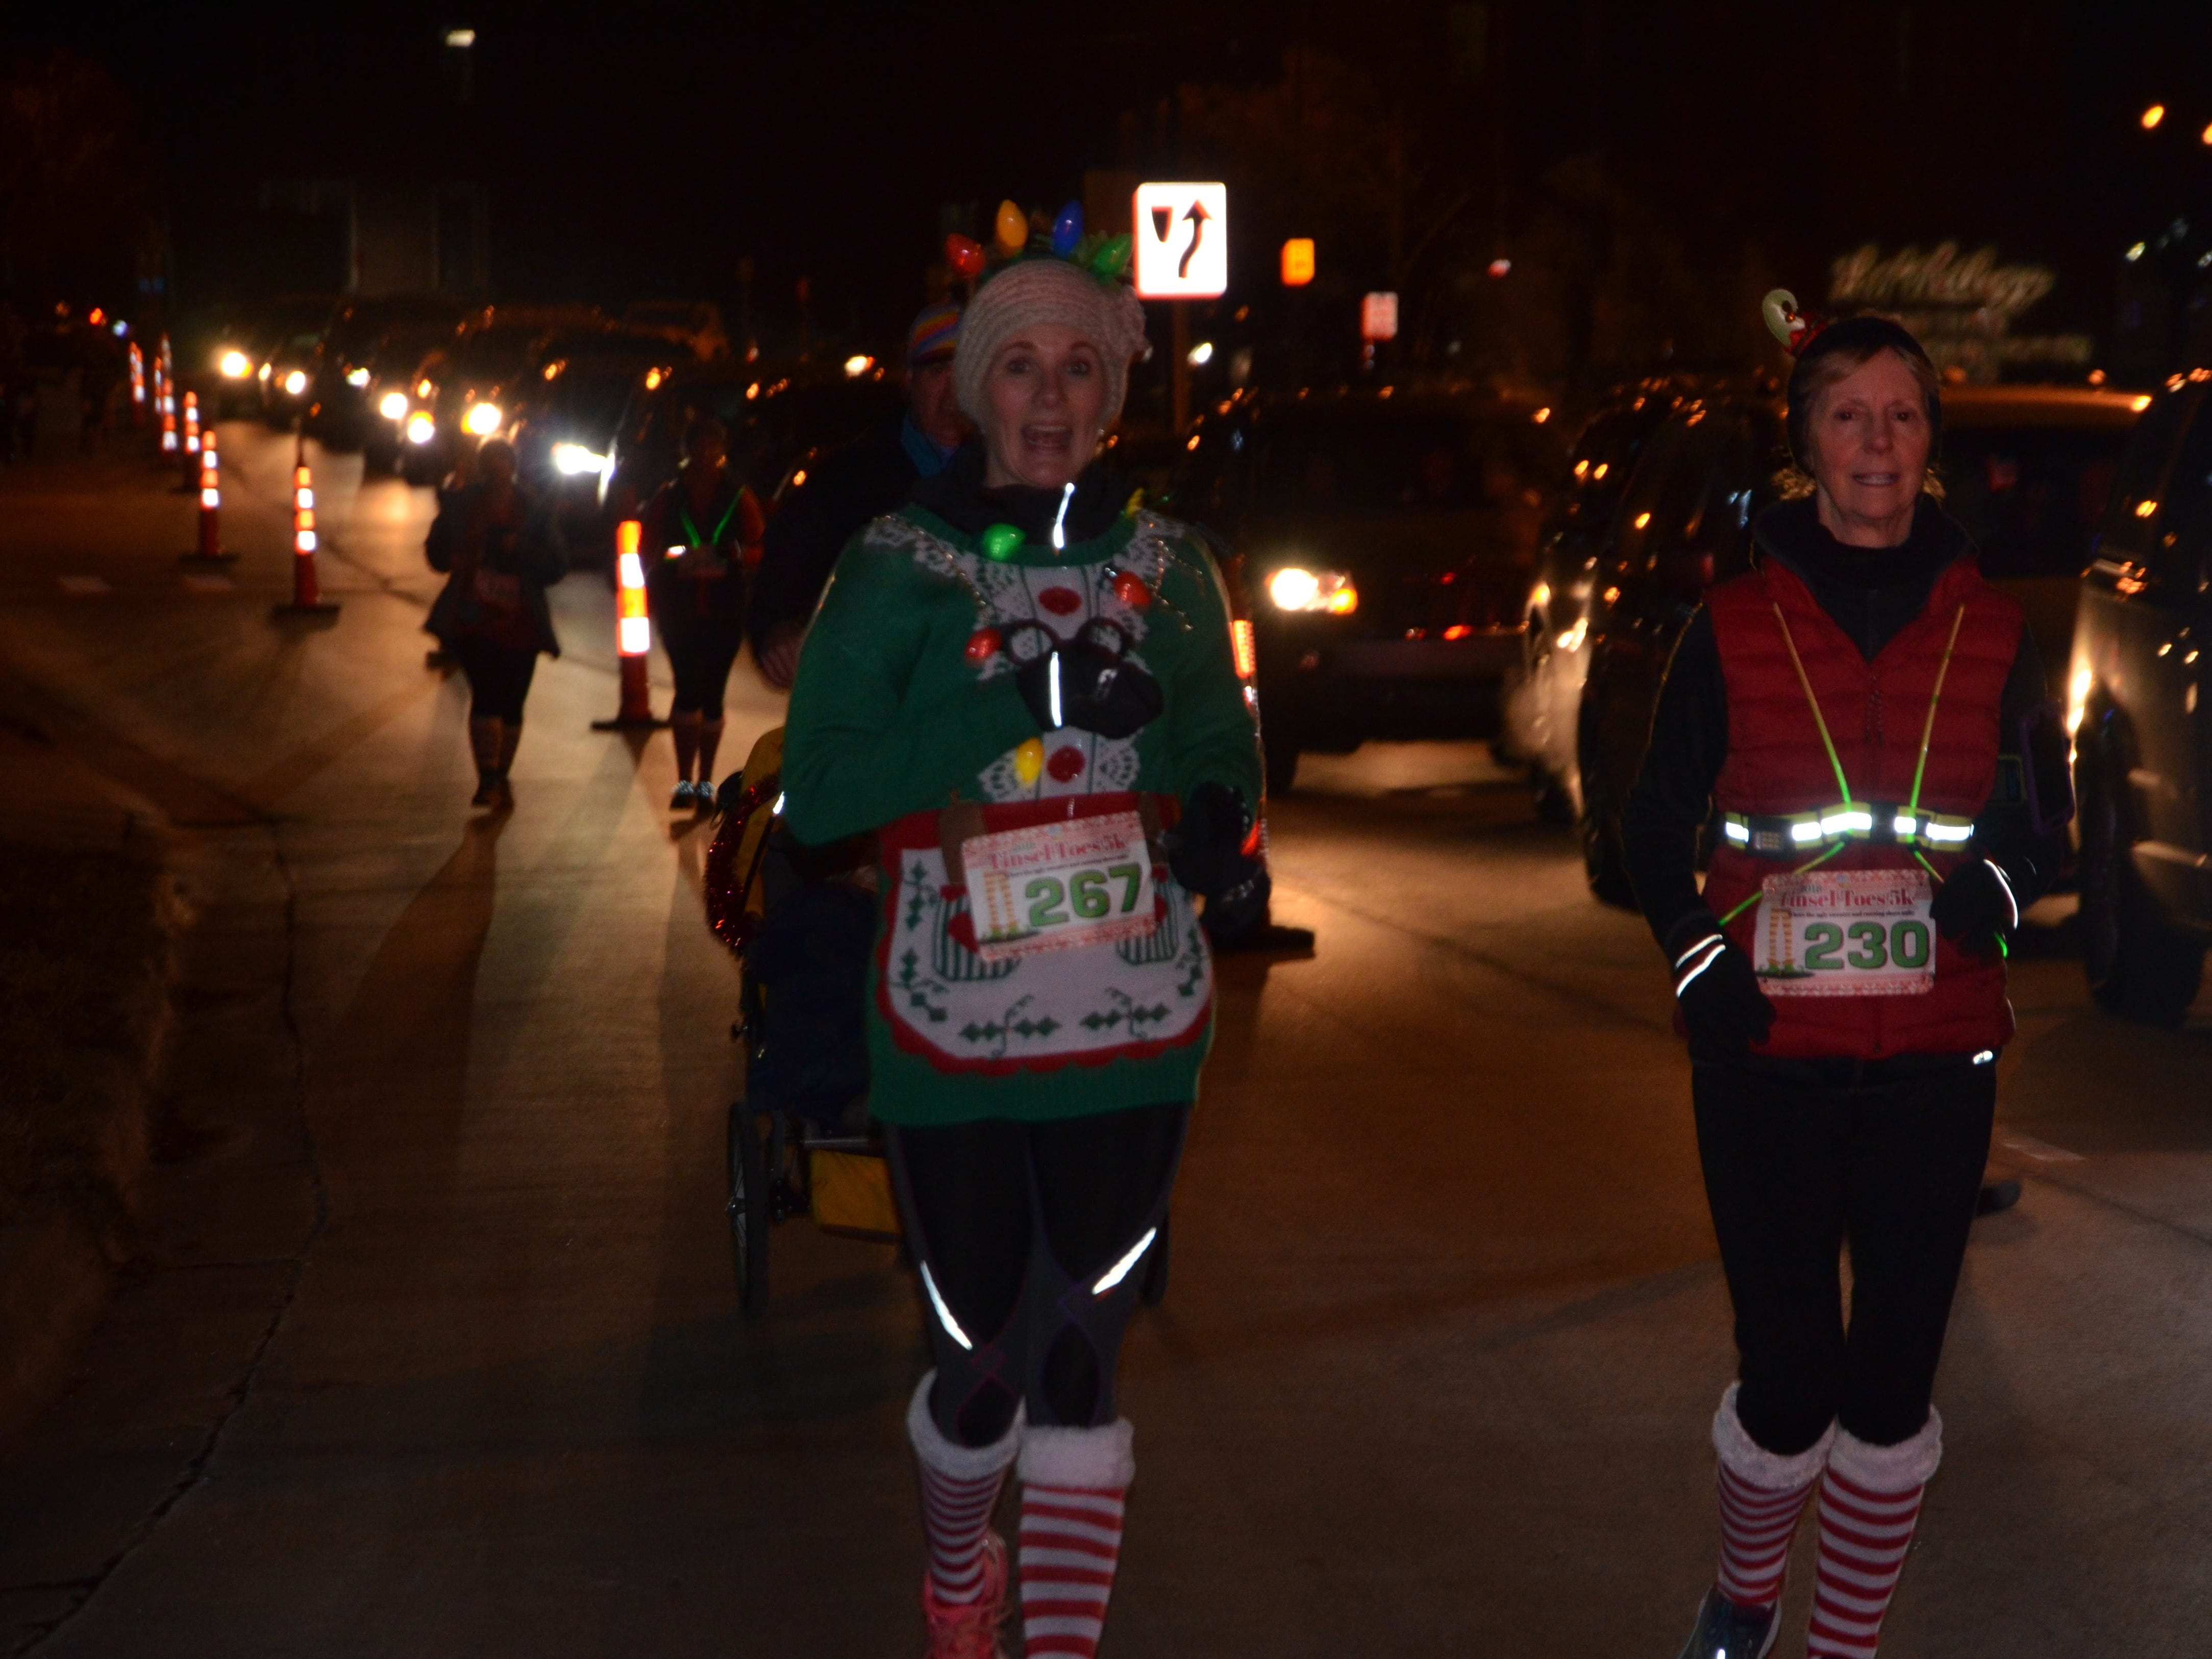 The Tinsel Toes 5K, presented by Cereal City Athletics, in downtown Battle Creek on Saturday, Dec. 8, 2018.